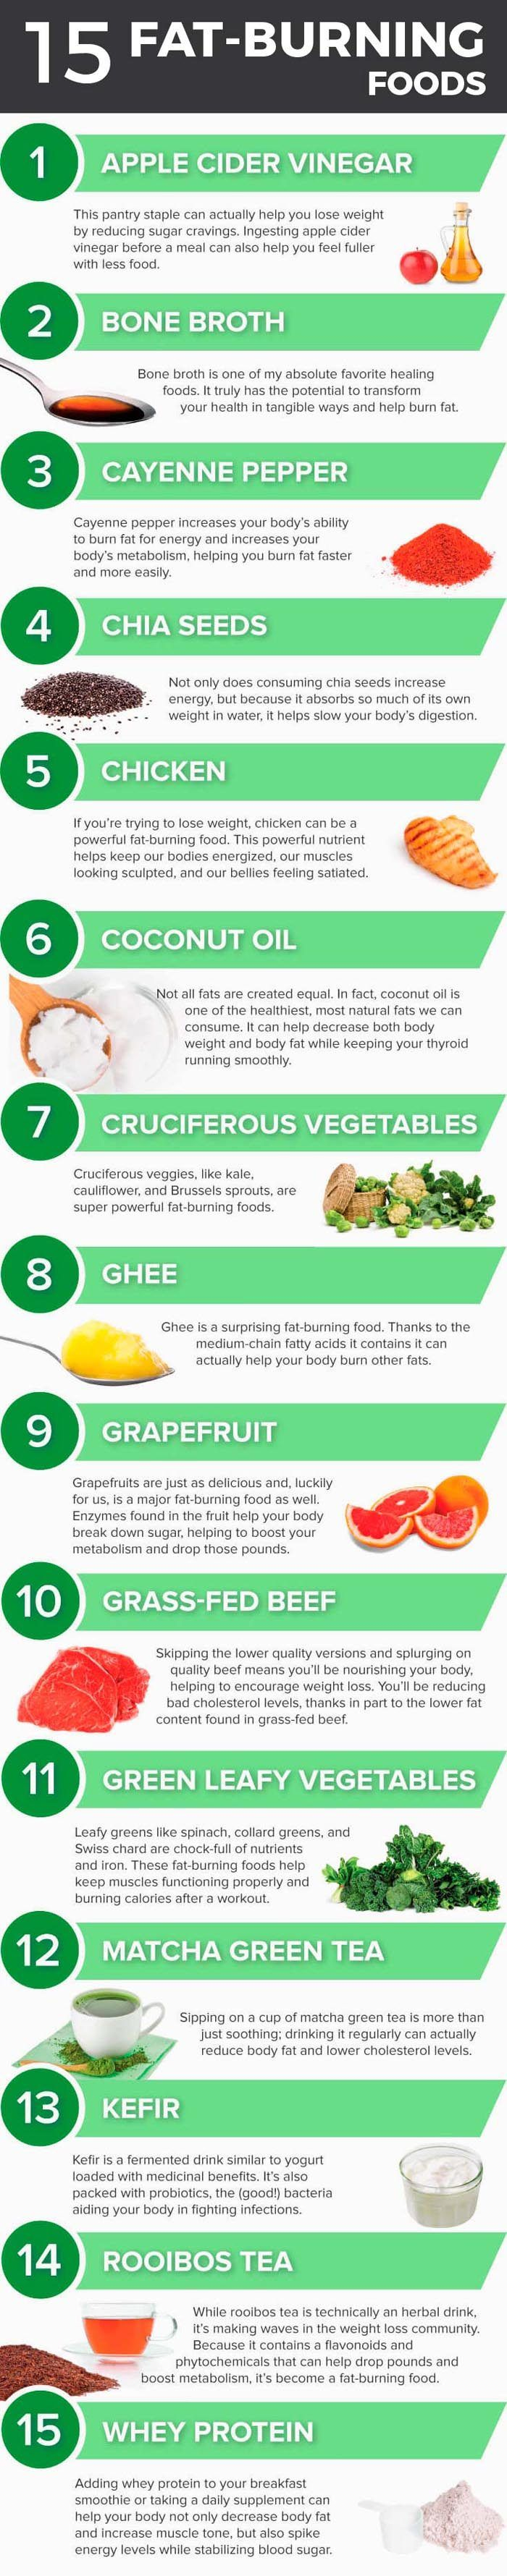 15 fat burning foods to help you lose weight